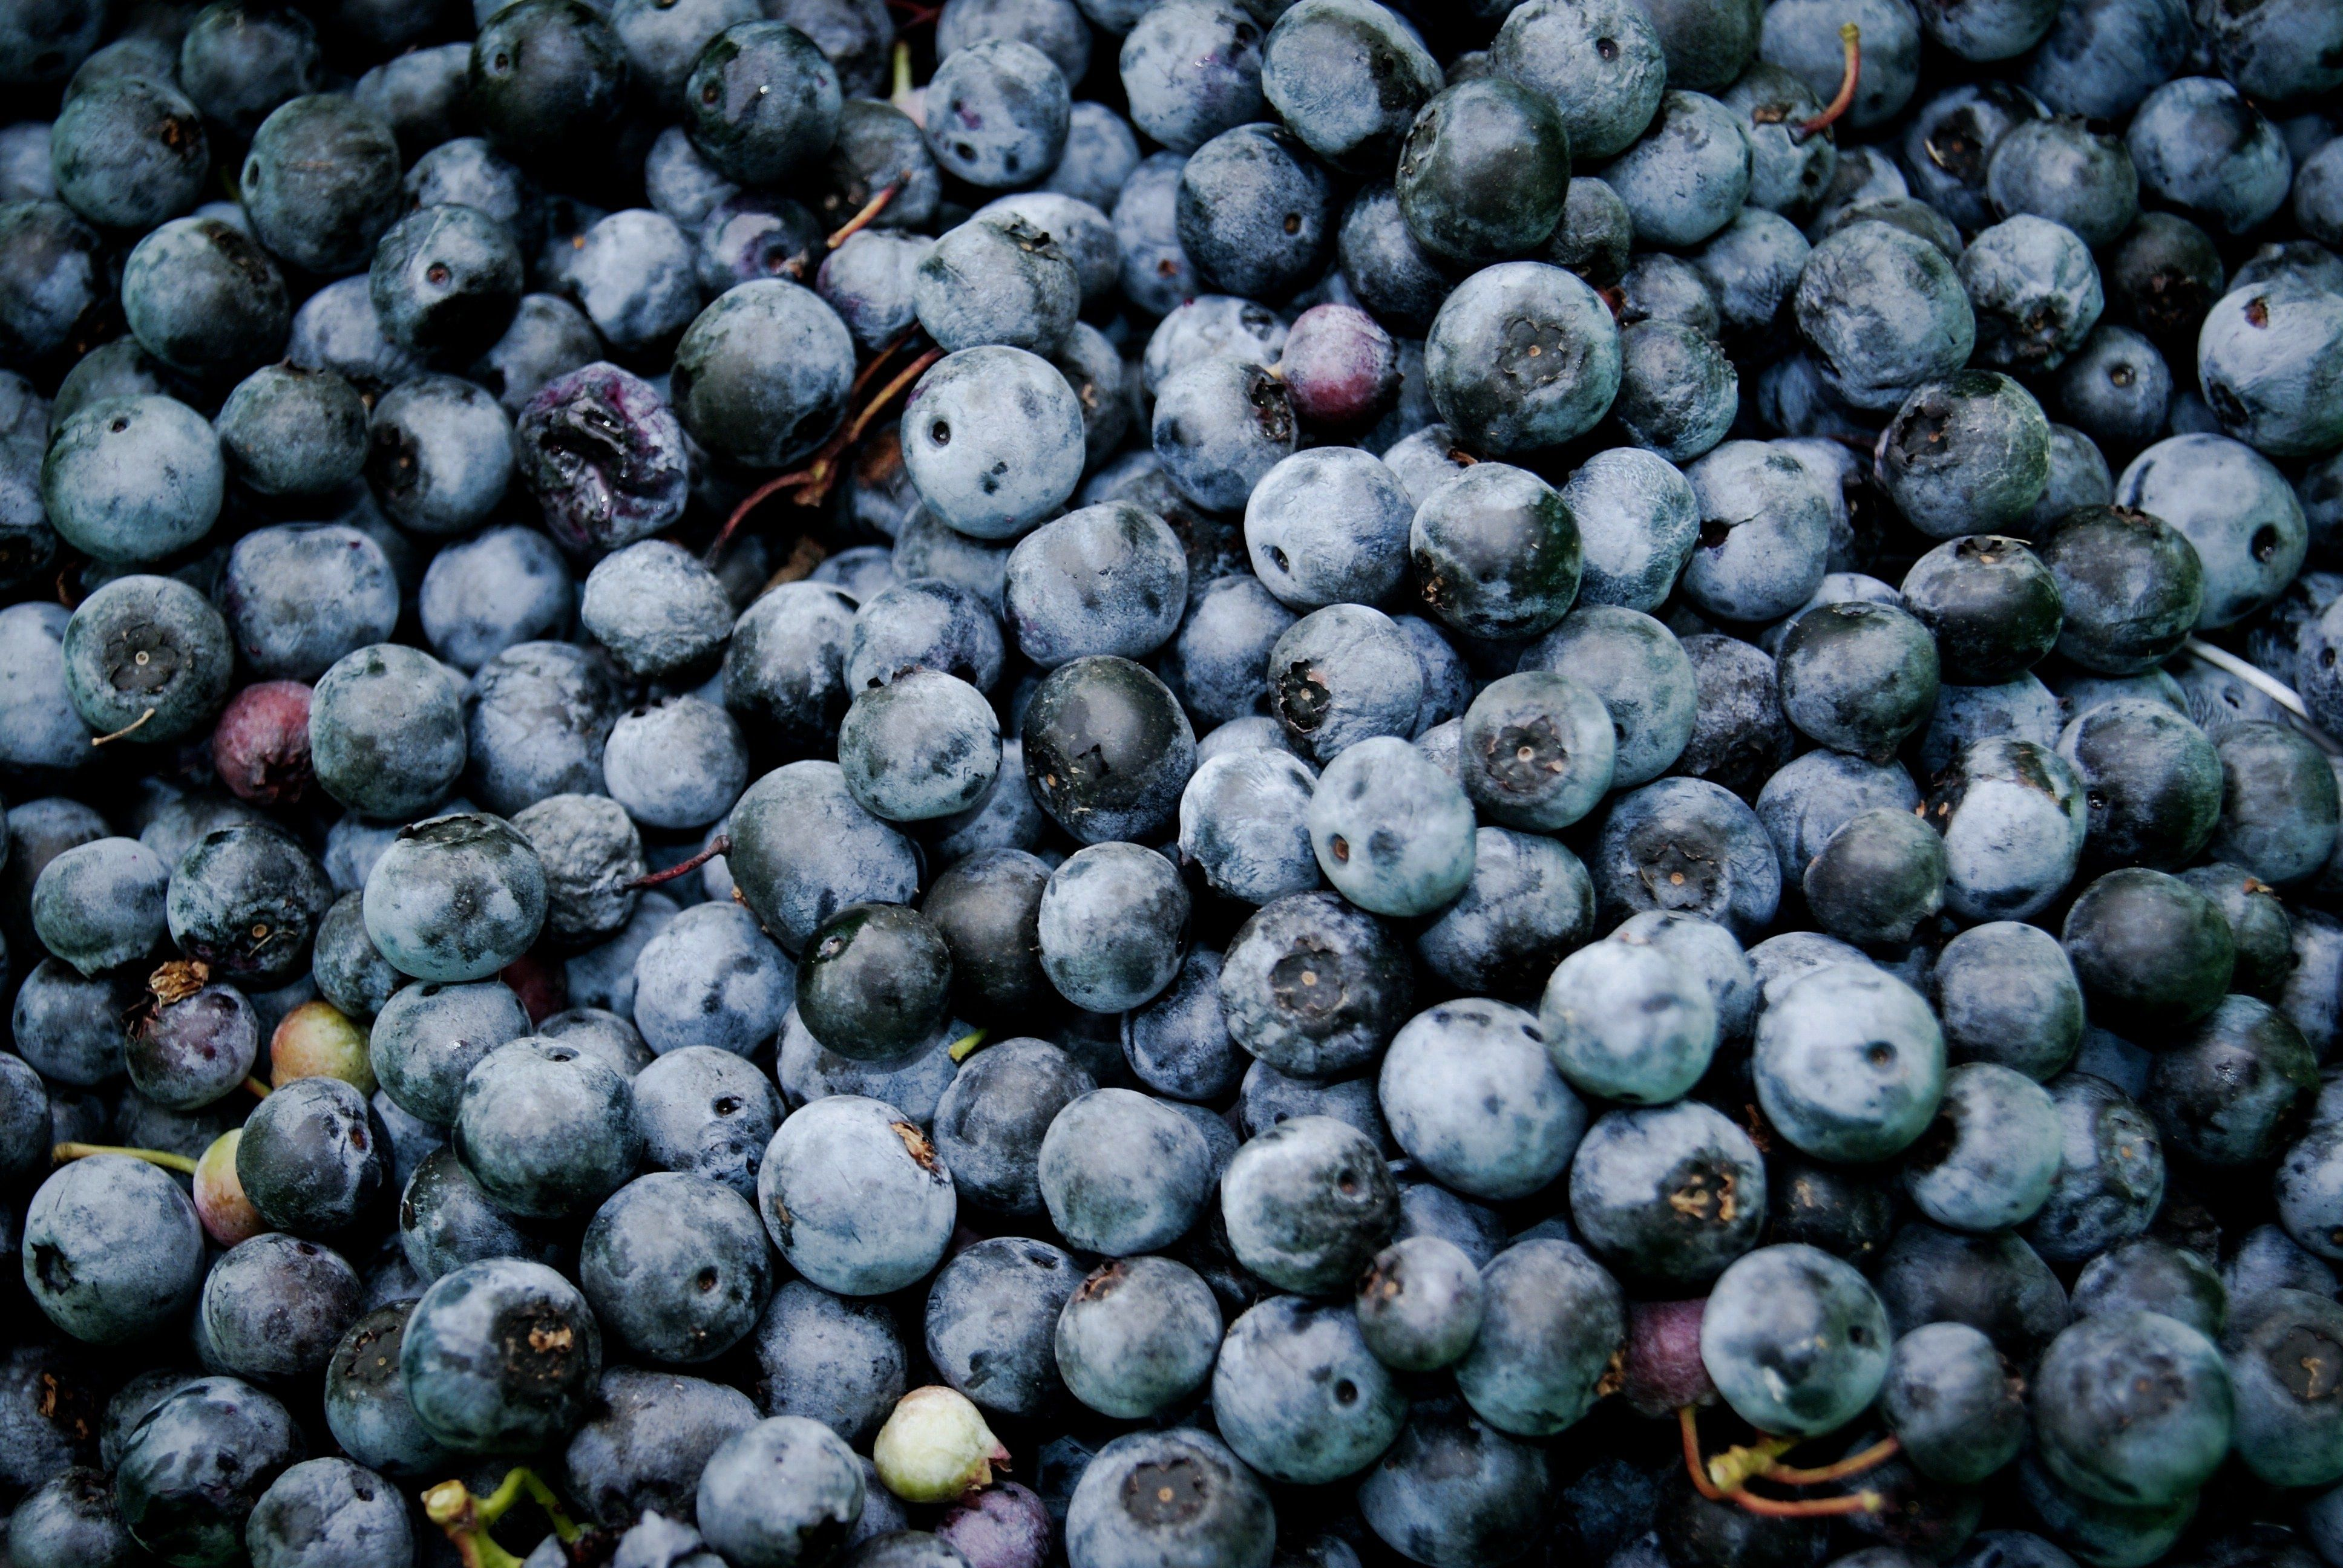 Next Happening: Upick and we pick; we all pick BLUEBERRIES